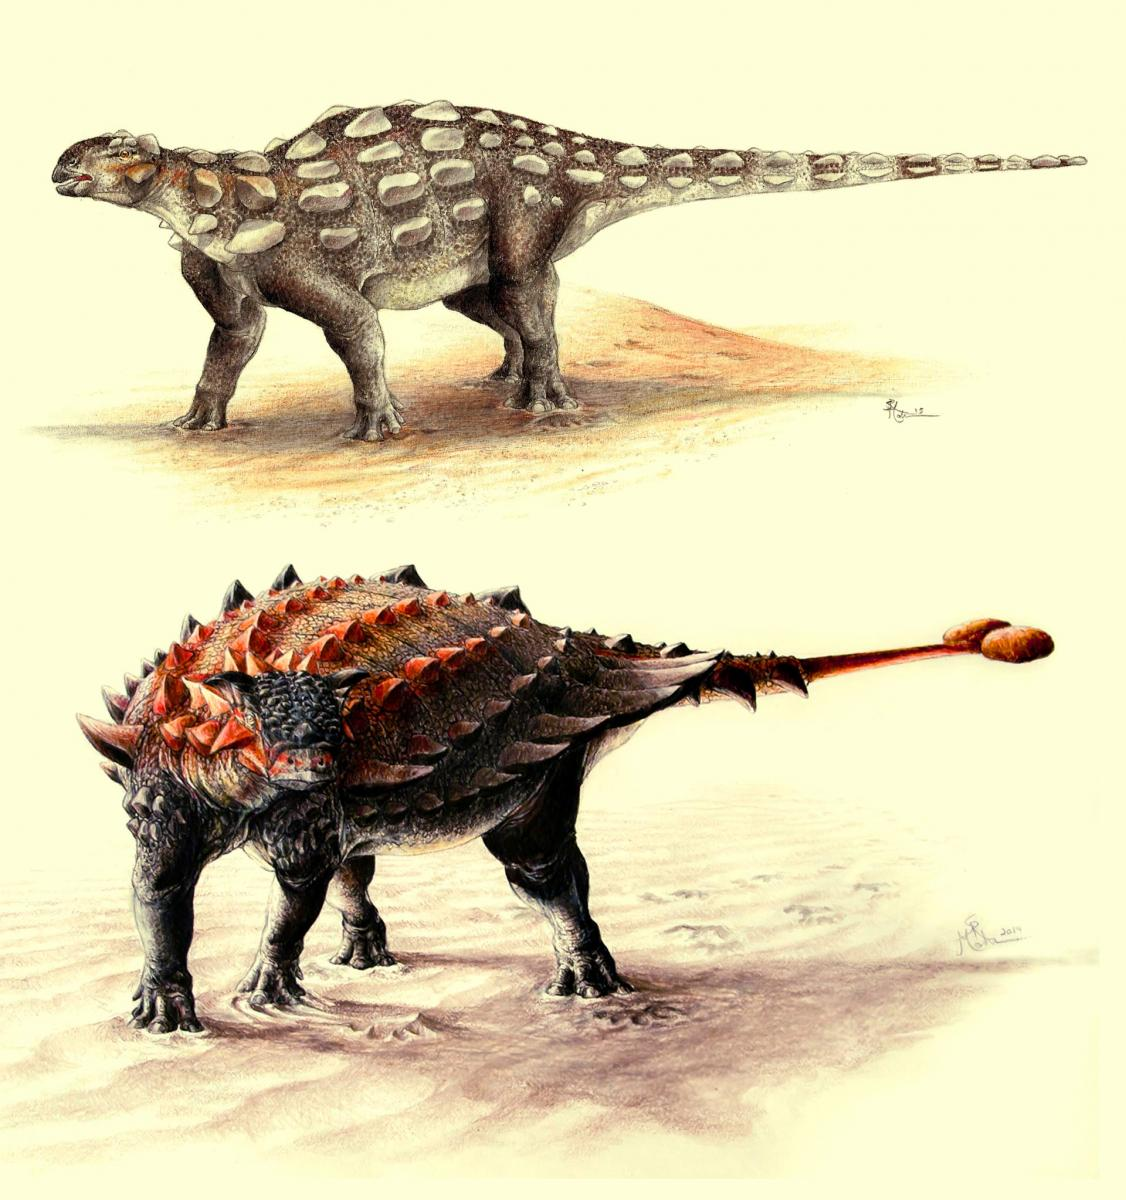 Gobisaurus, an ankylosaur with a stiff tail but no knob of bone at the end, compared with Ziapelta, an ankylosaur with a fully developed tail club. Image credit: Sydney Mohr.